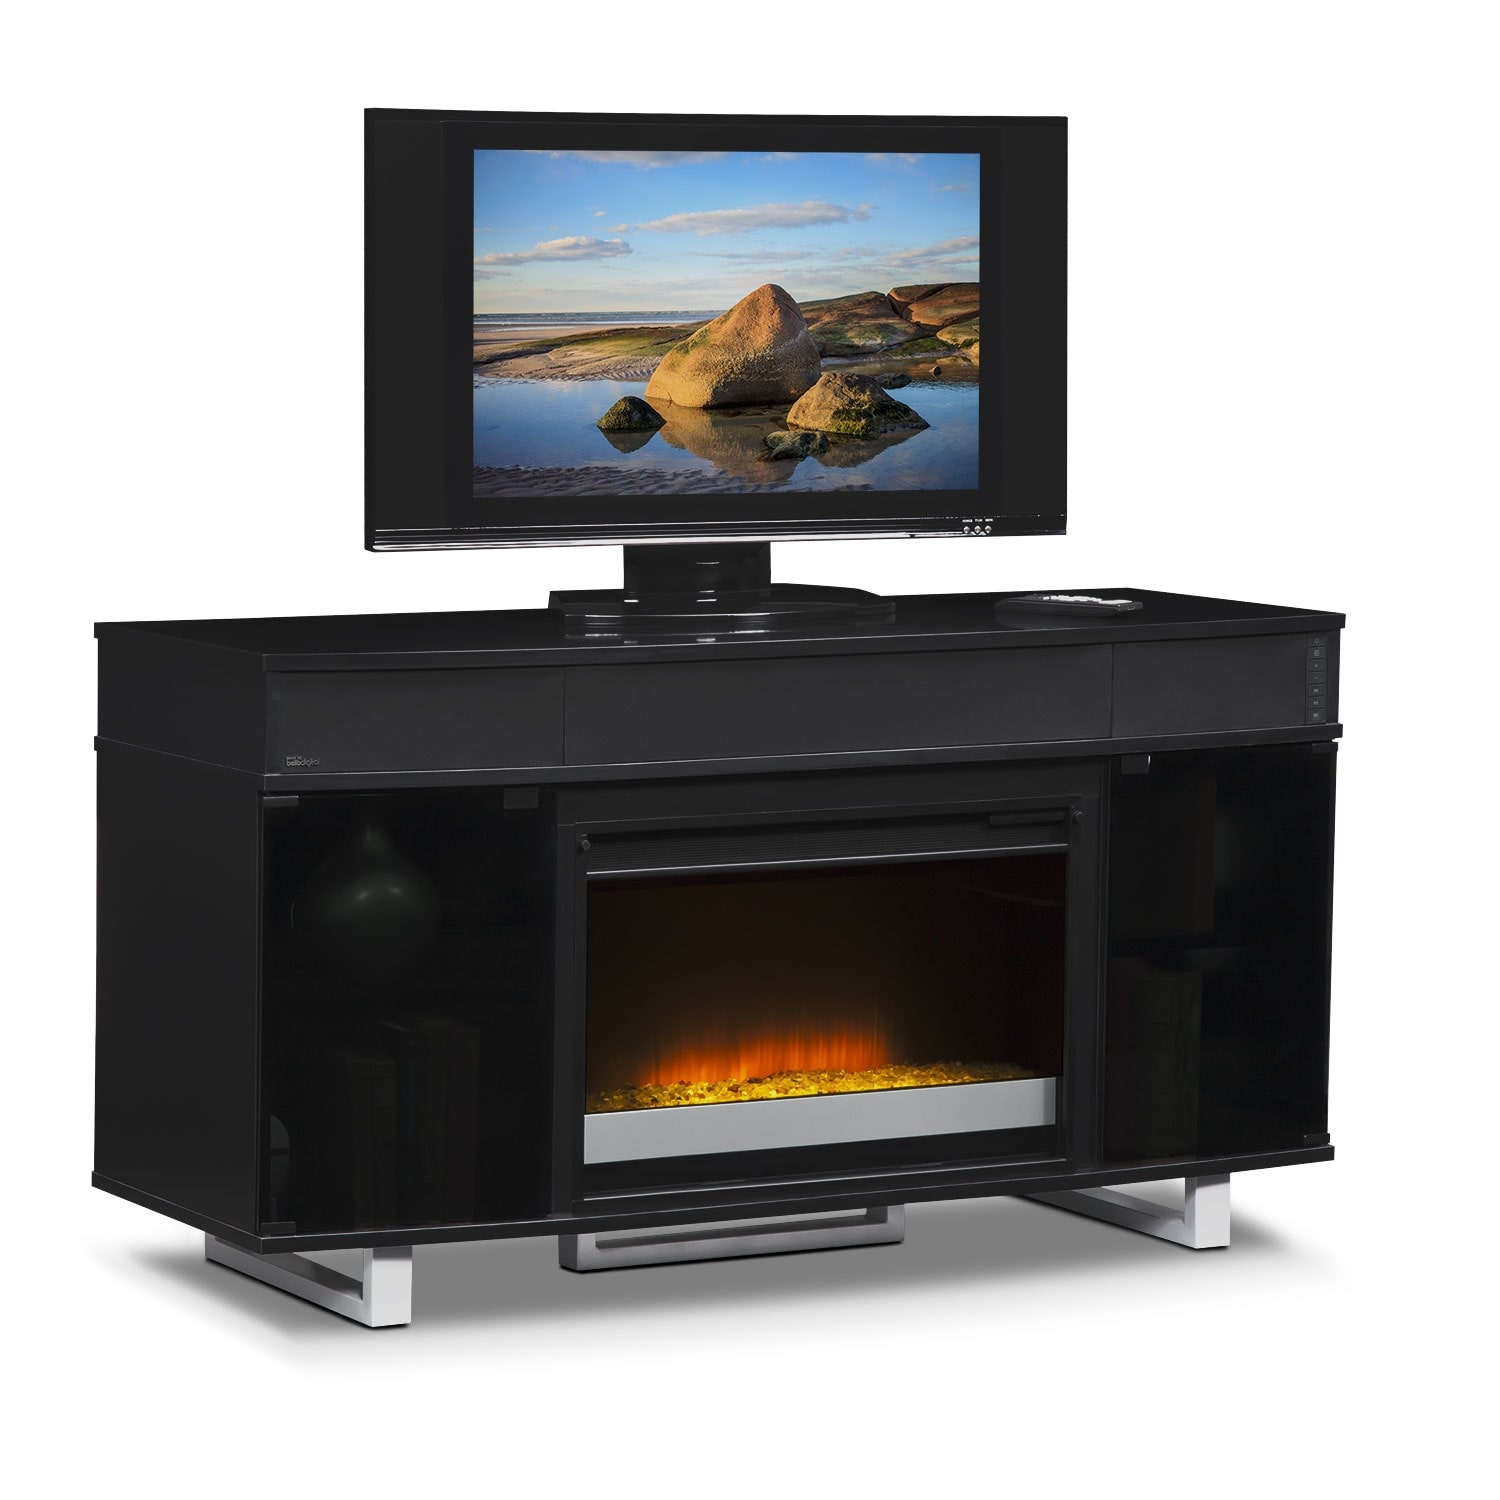 pacer 56 quot contemporary fireplace tv stand with sound bar